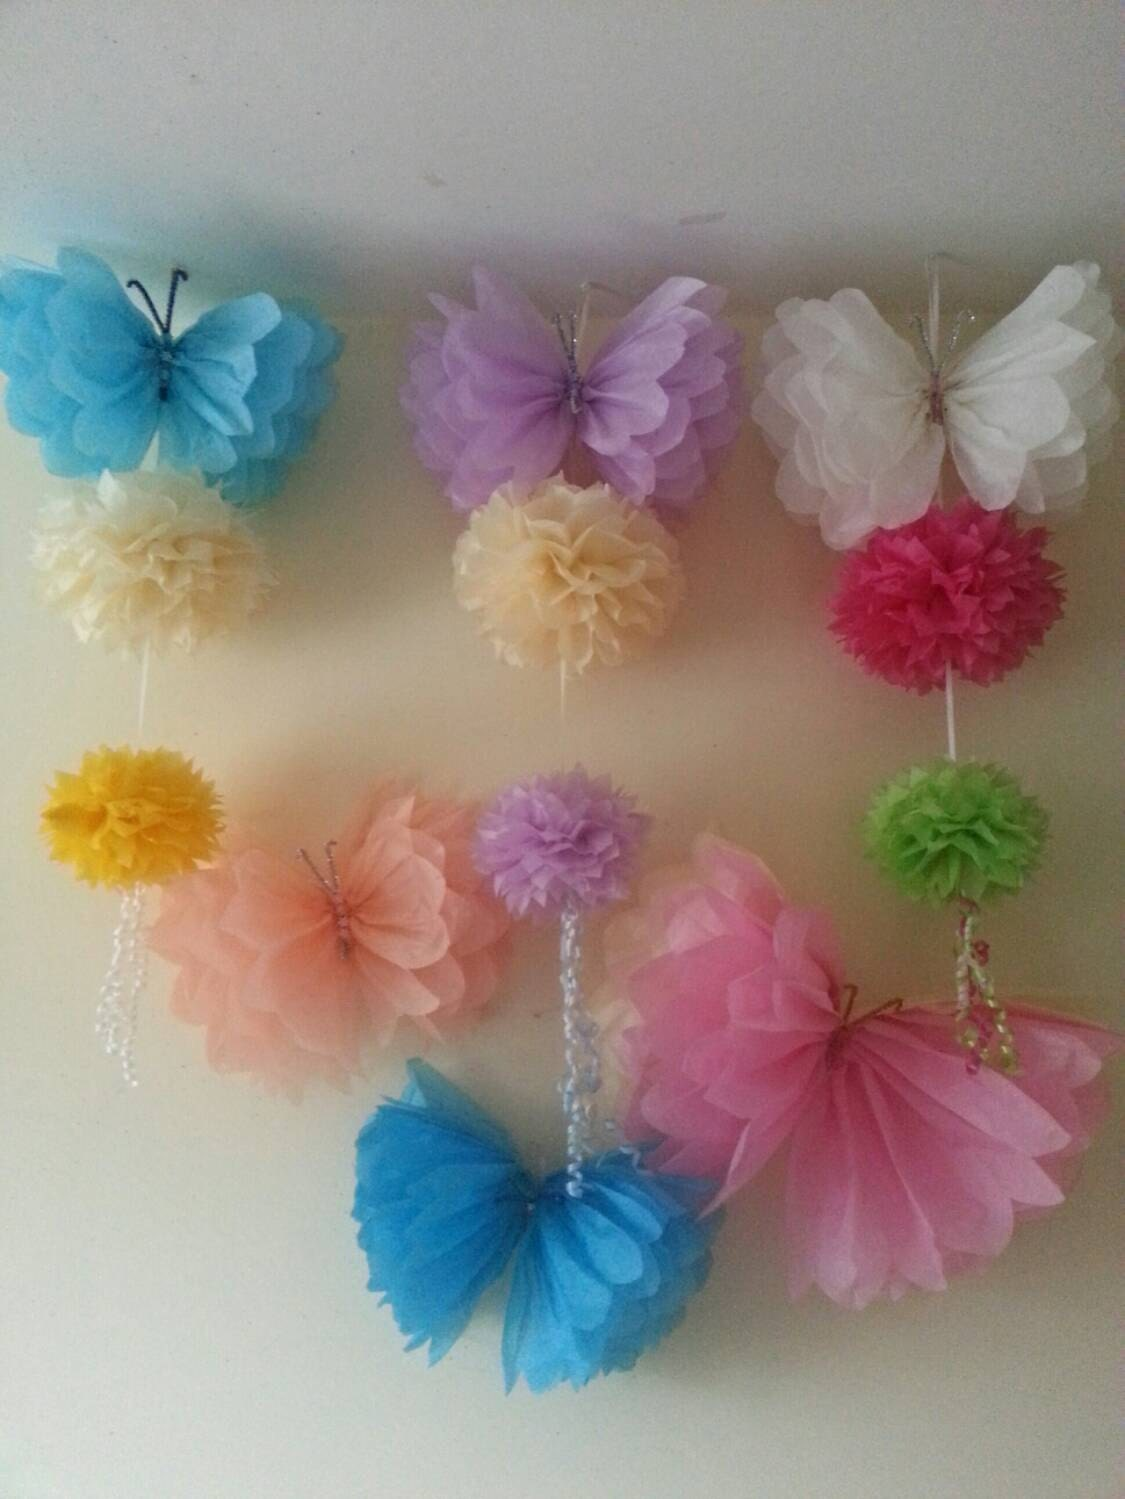 Free shipping 6 hanging ceiling wall tissue paper pom for Hanging pom poms from ceiling